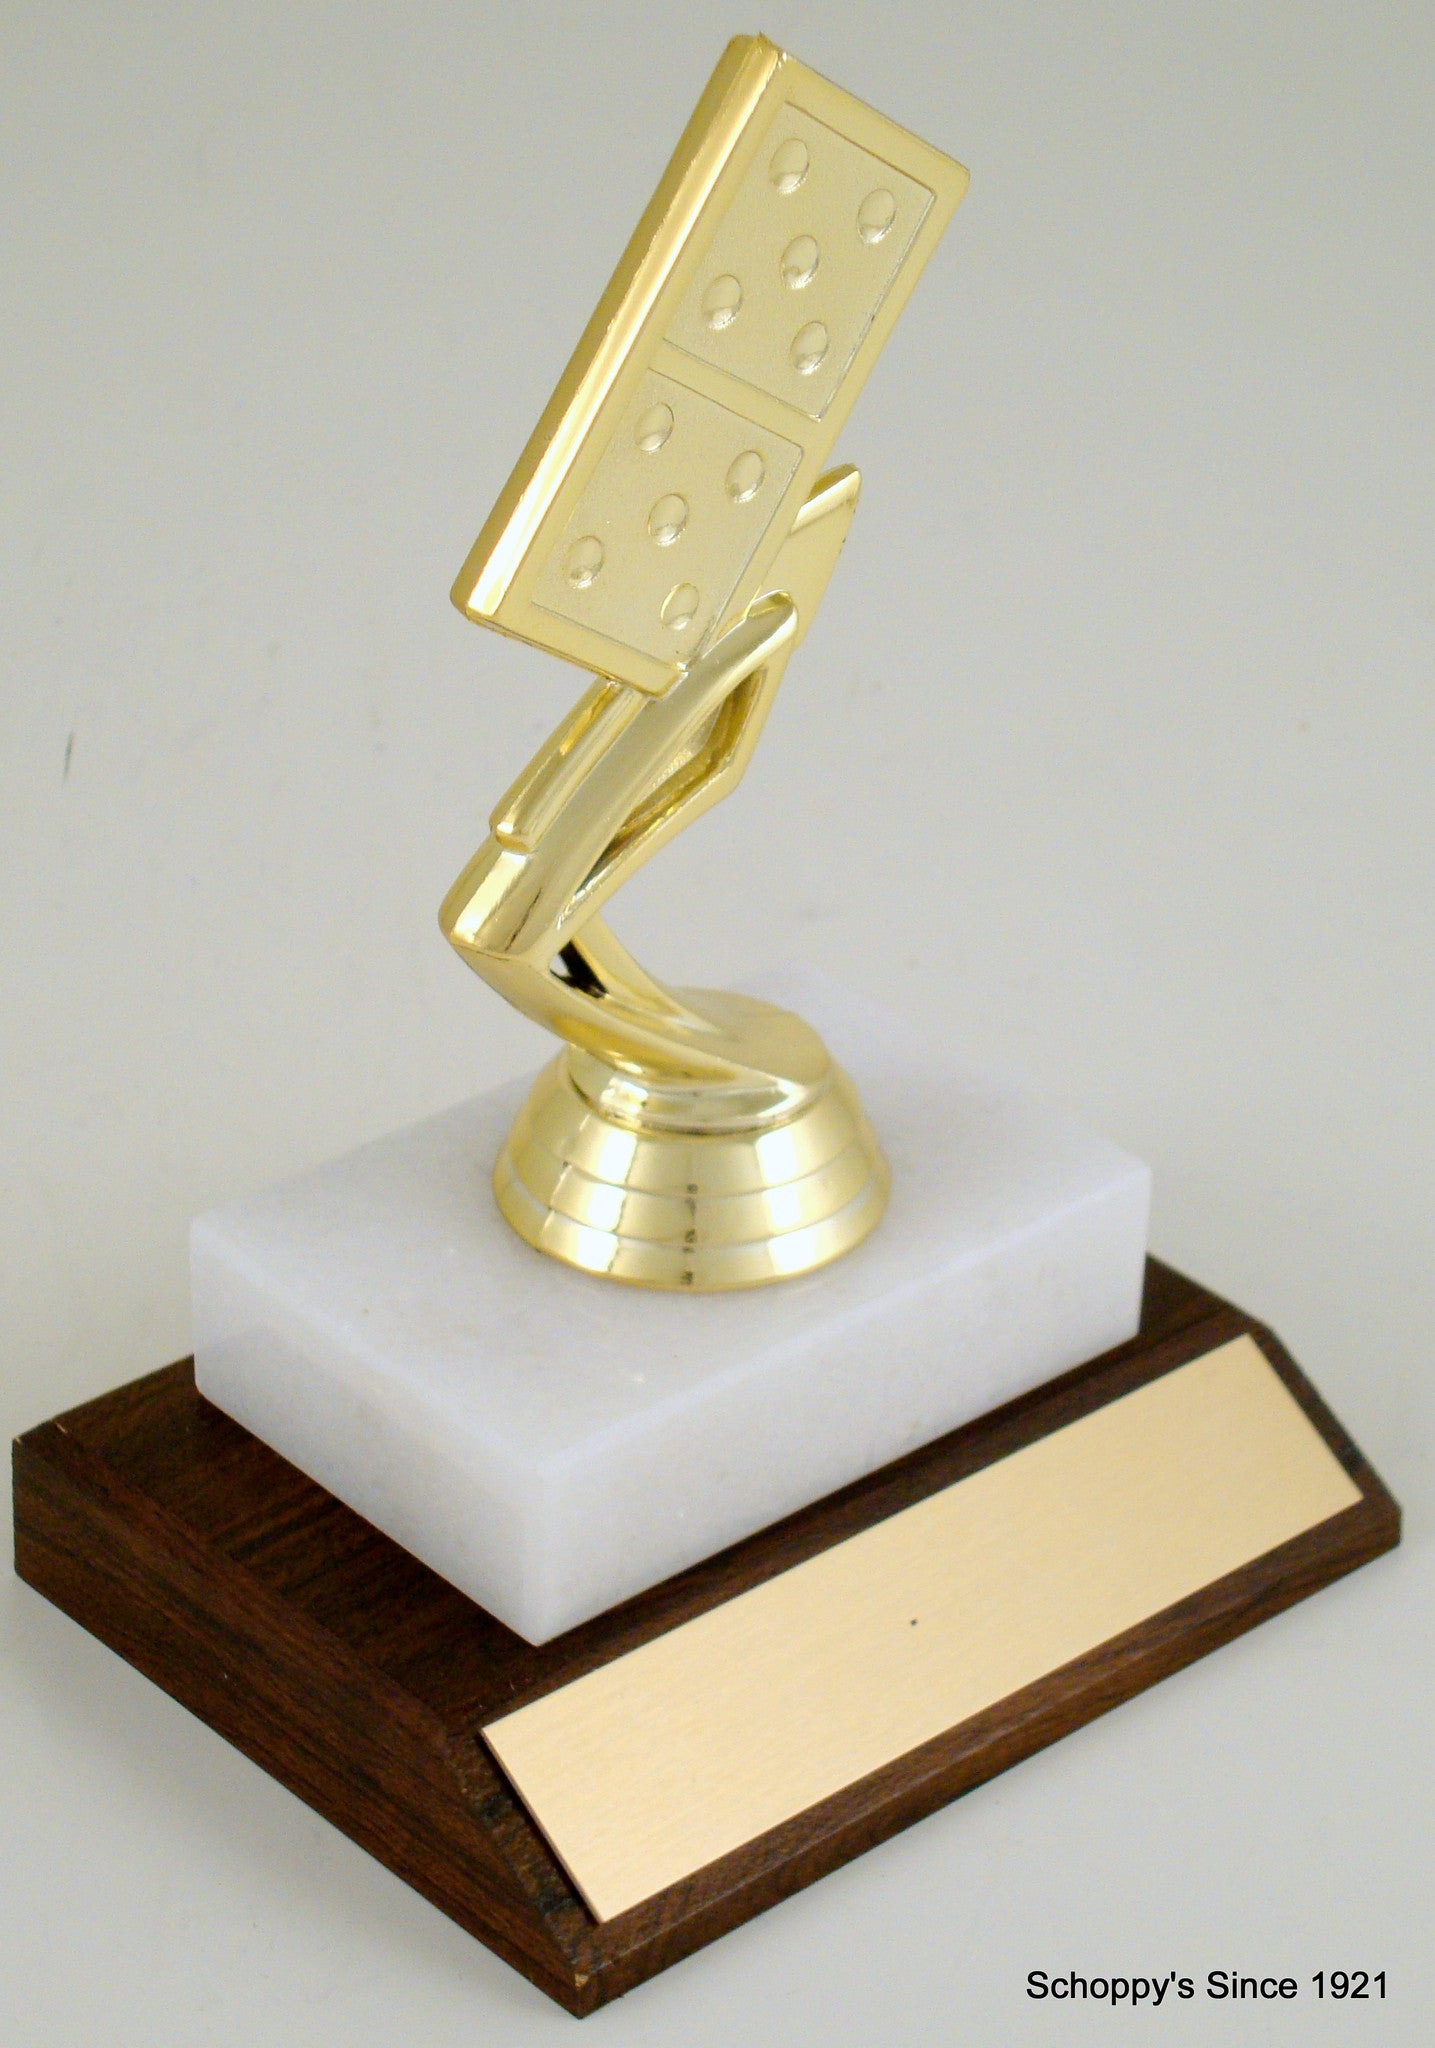 Domino Piece Trophy On Wood And Marble Base-Trophy-Schoppy's Since 1921